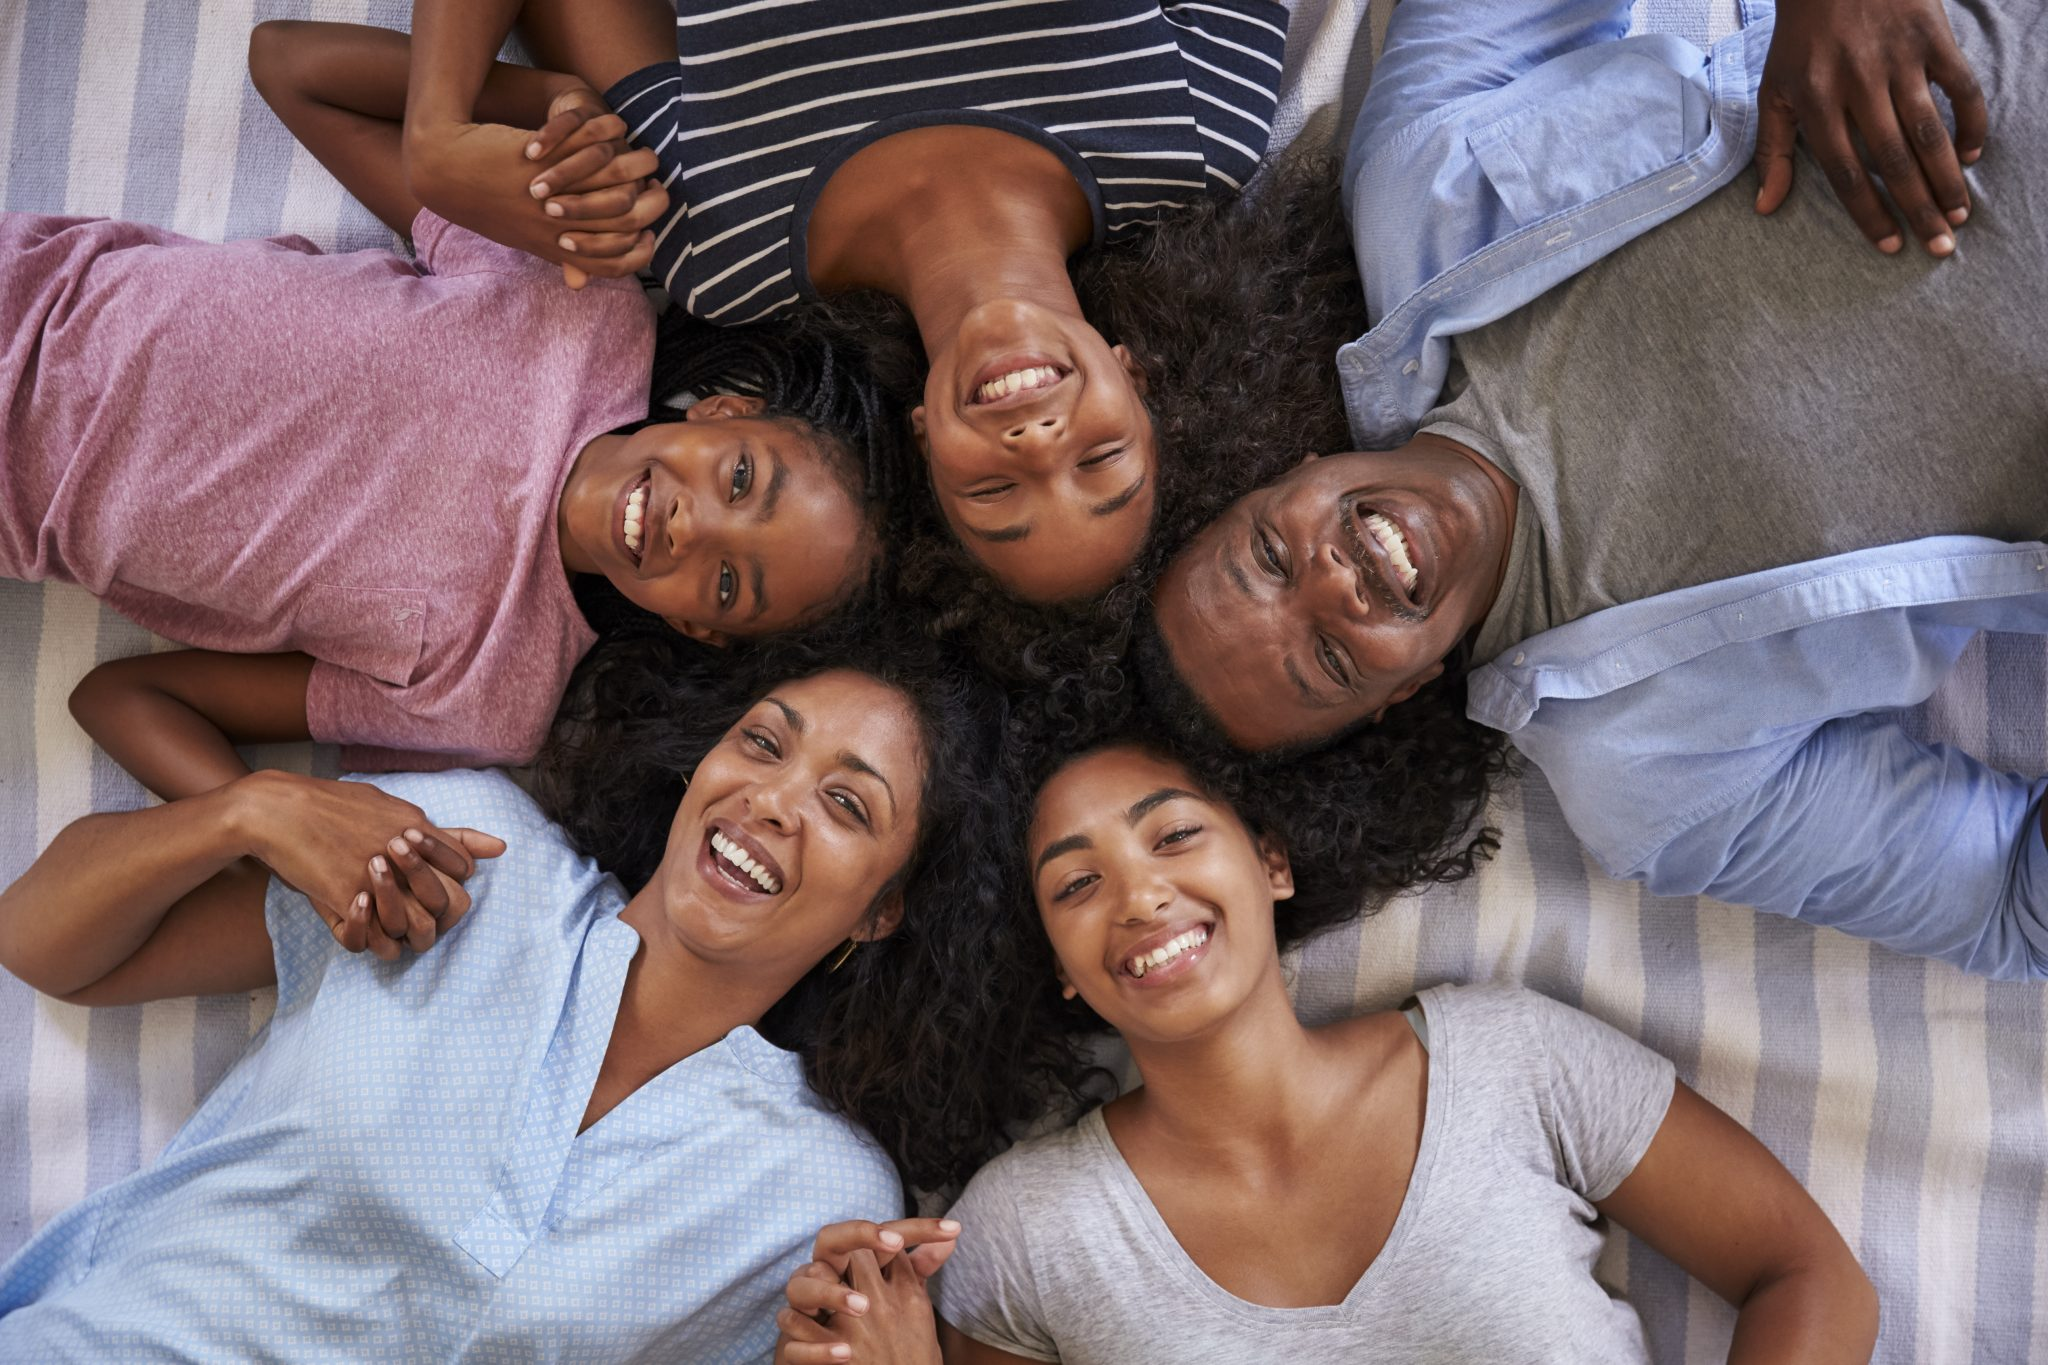 Overhead View Of Family With Teenage Children Lying On Bed